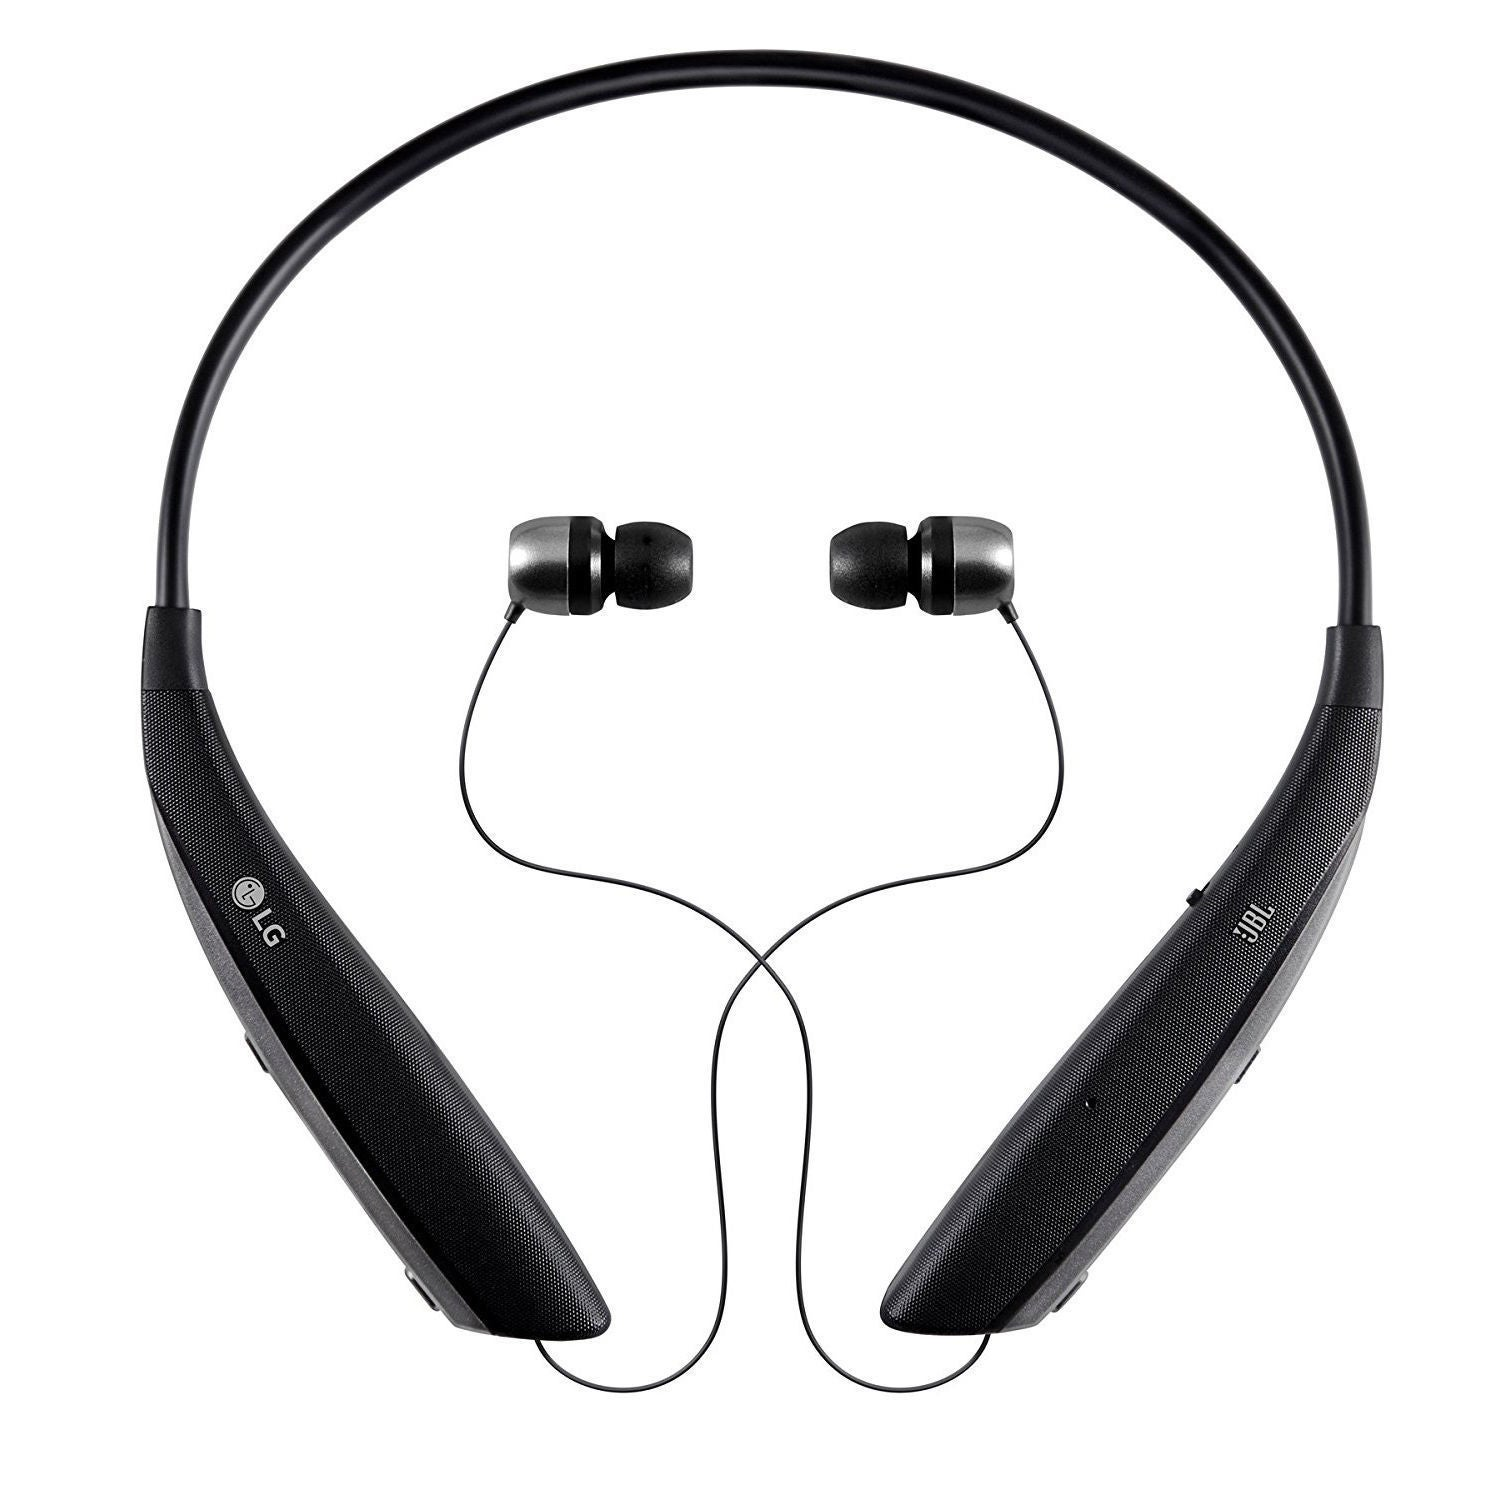 0d1cc8c2f32 Shop LG Tone Ultra HBS-820 Premium Wireless Stereo Headset for Any  Bluetooth Devices - Free Shipping Today - Overstock - 15389825